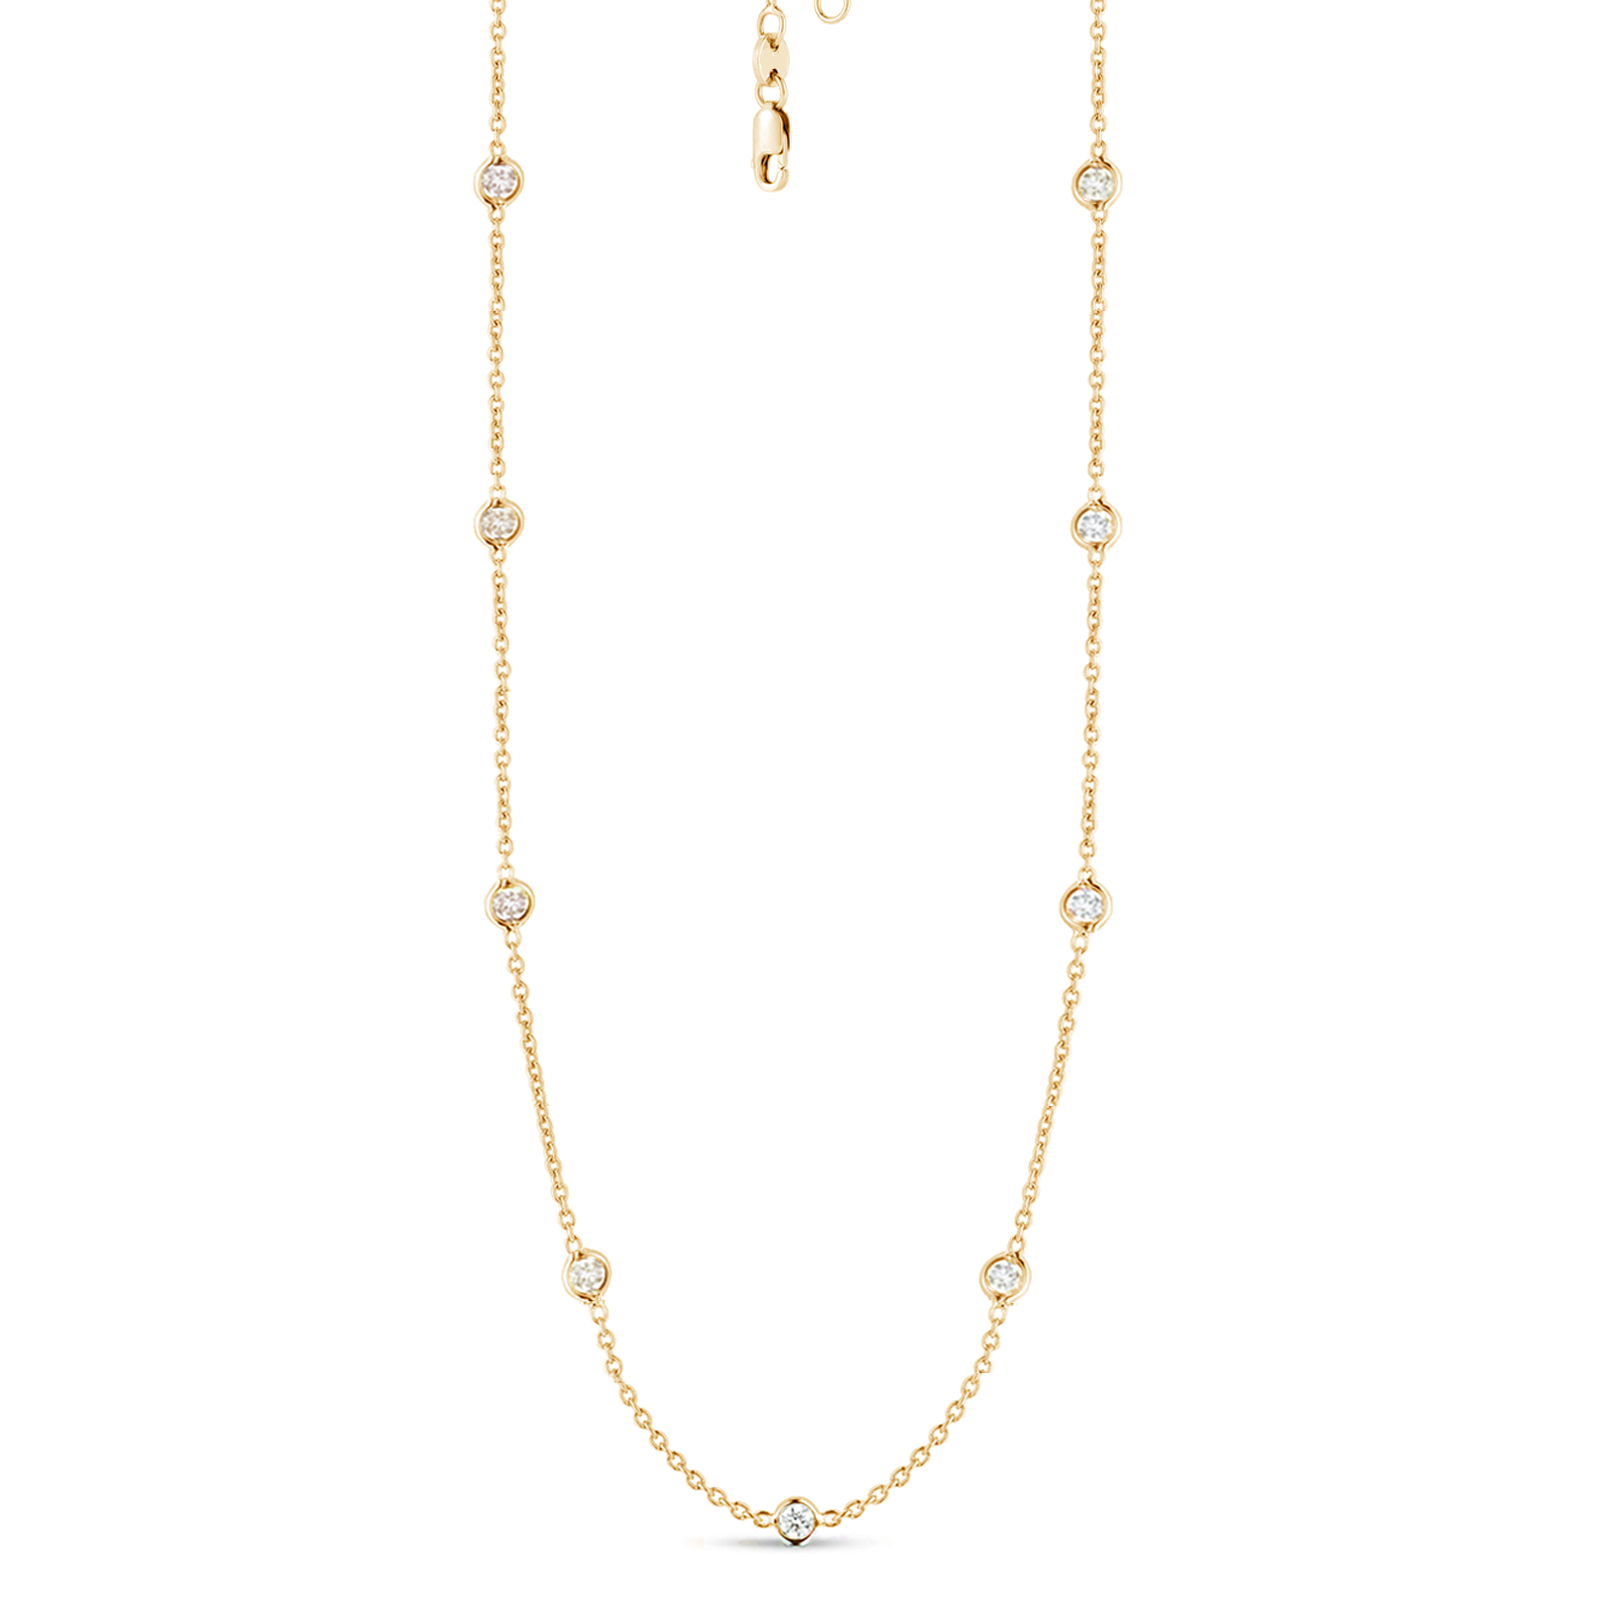 9 Station Classic Bezel Set Chain Necklace, 1.02ctw